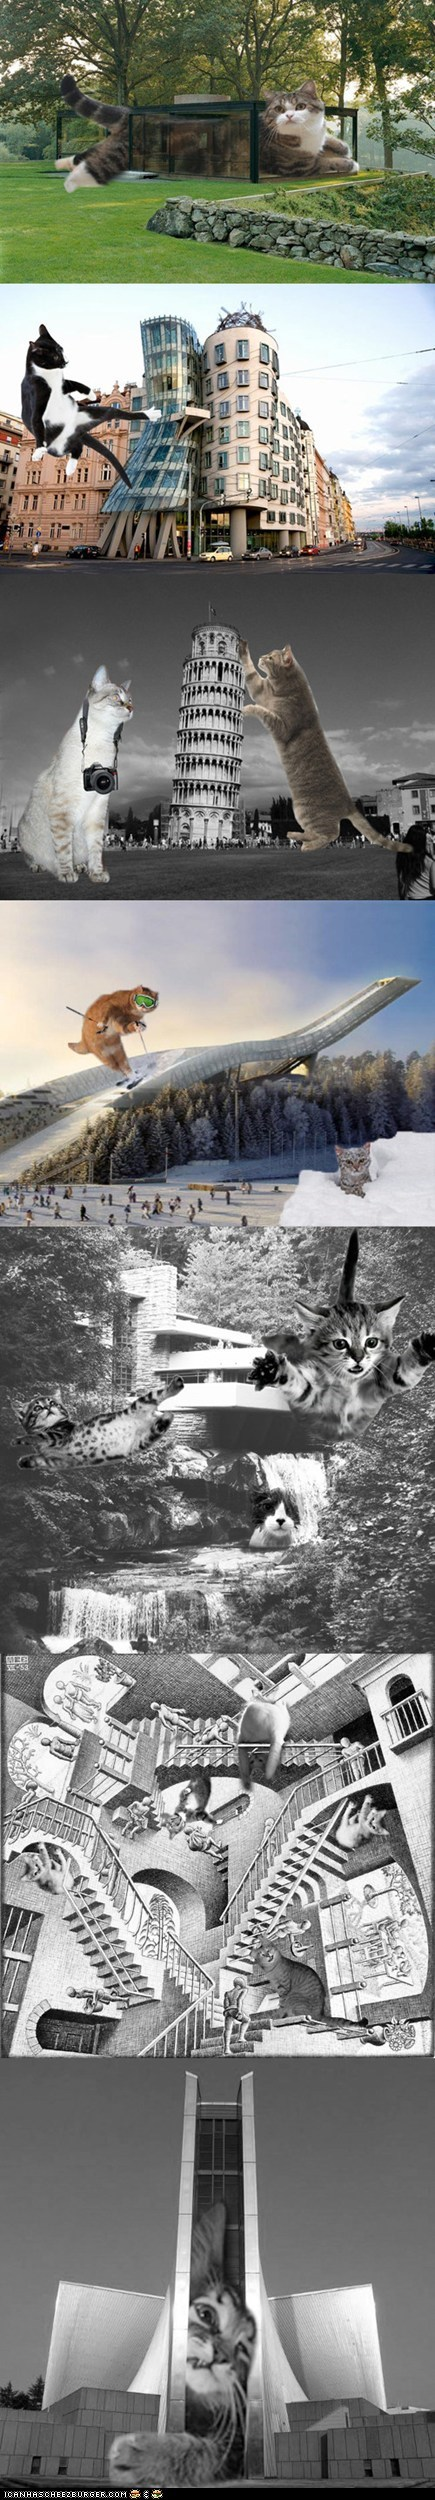 architecture buildings Cats furrocious forms photoshopped silly wtf